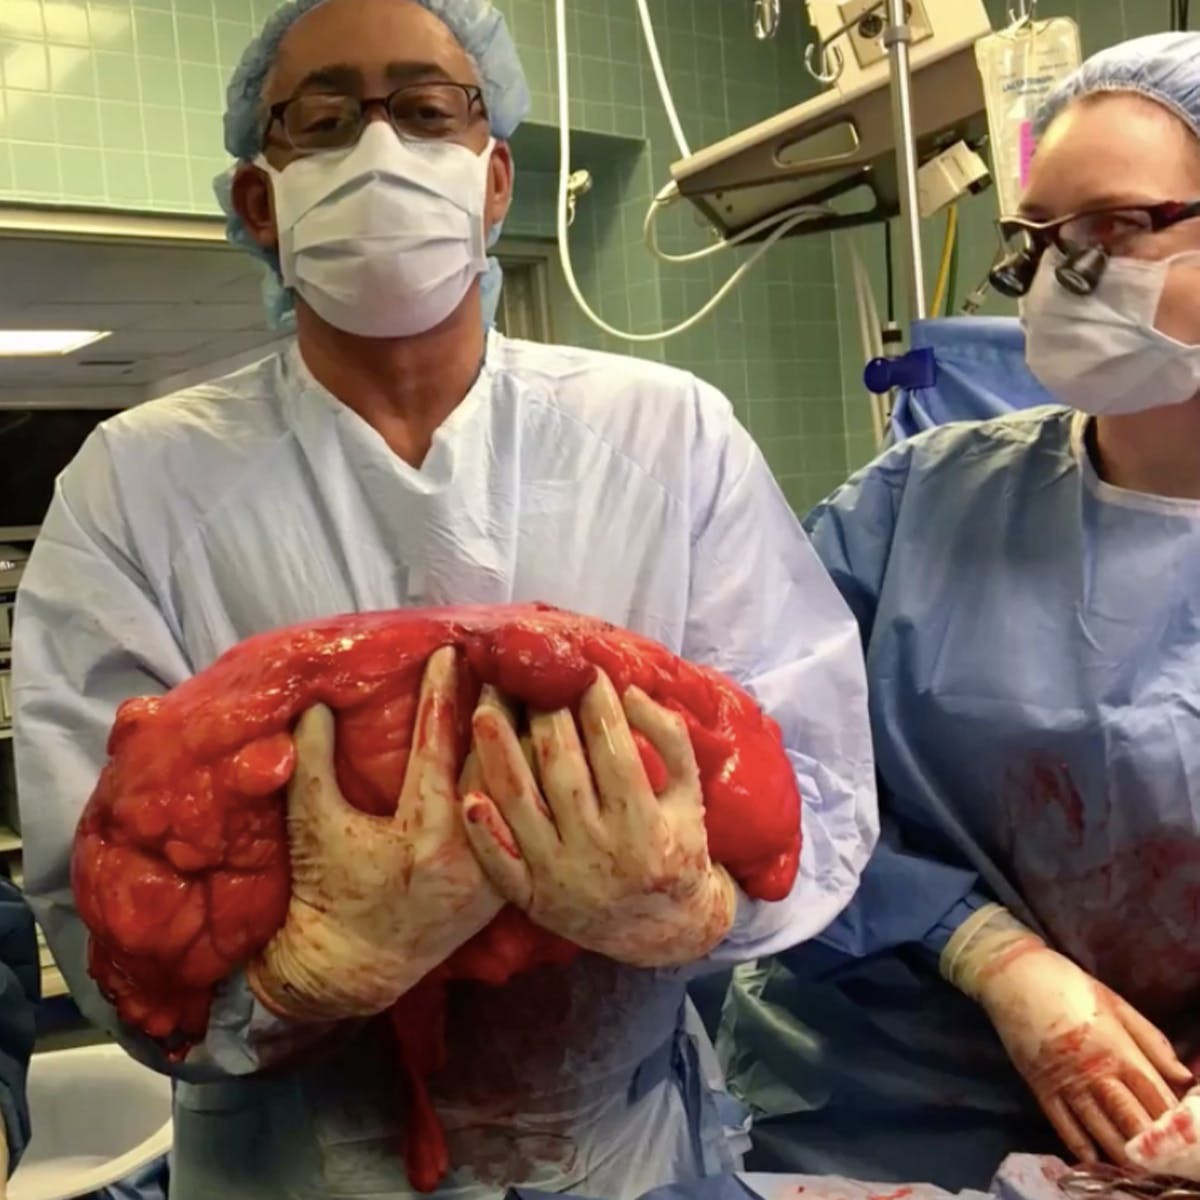 What Is Liposarcoma? Doctors Remove 30-Pound Tumor from Man's Stomach